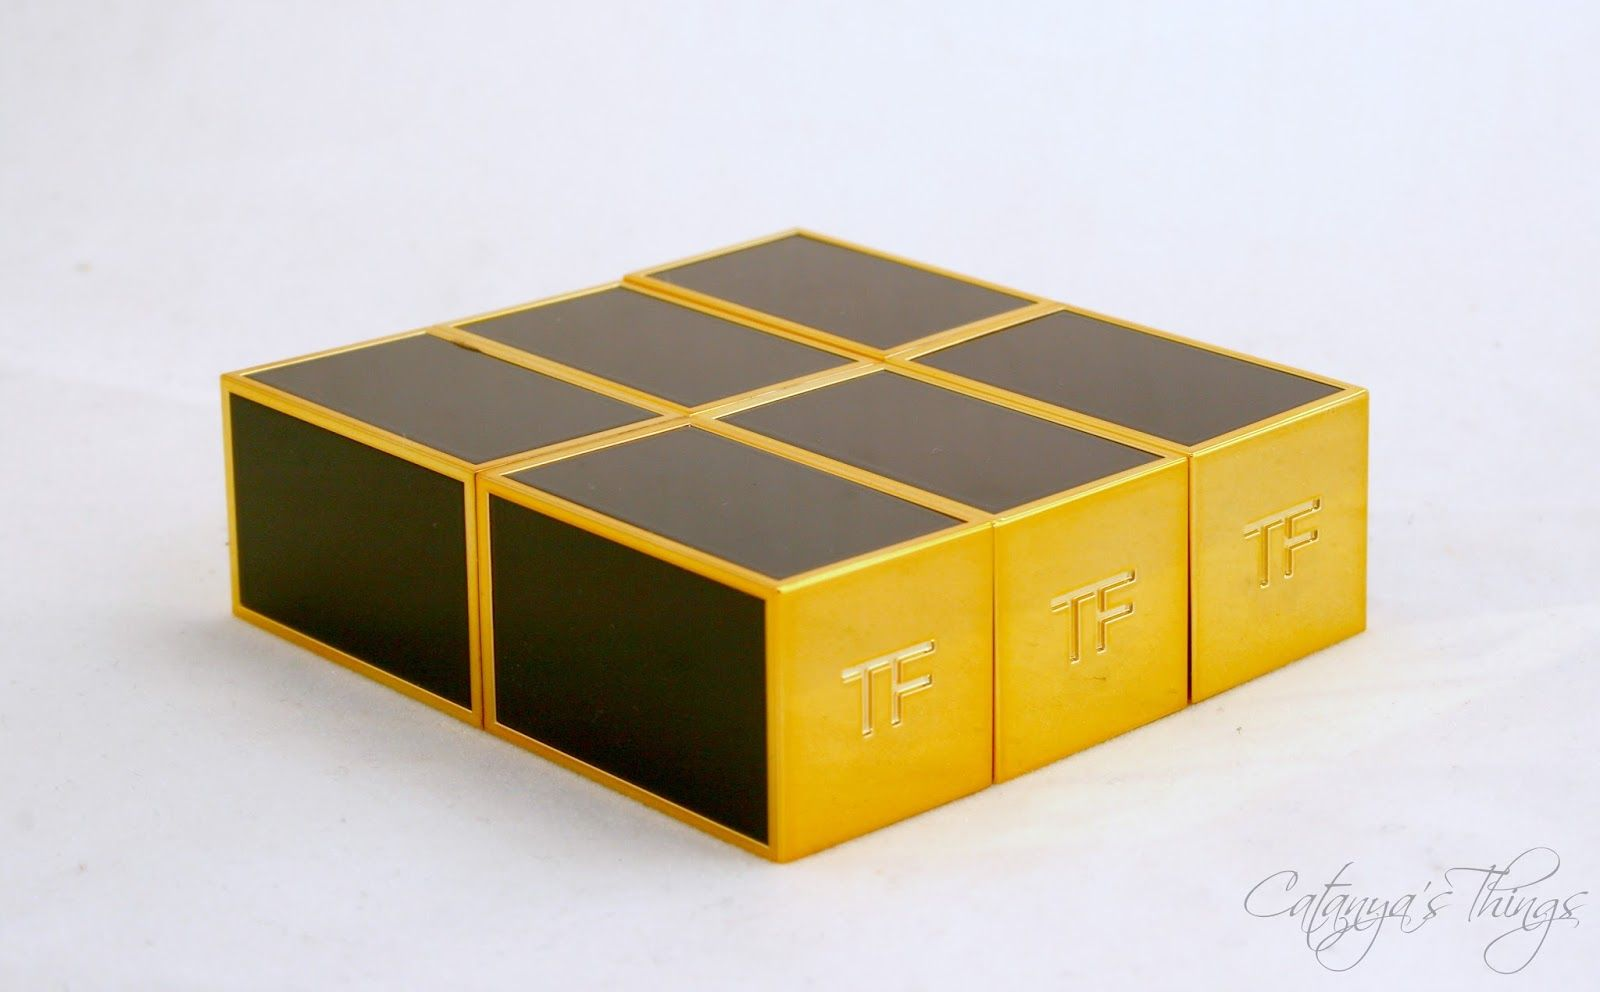 tom ford, packaging - Google Search